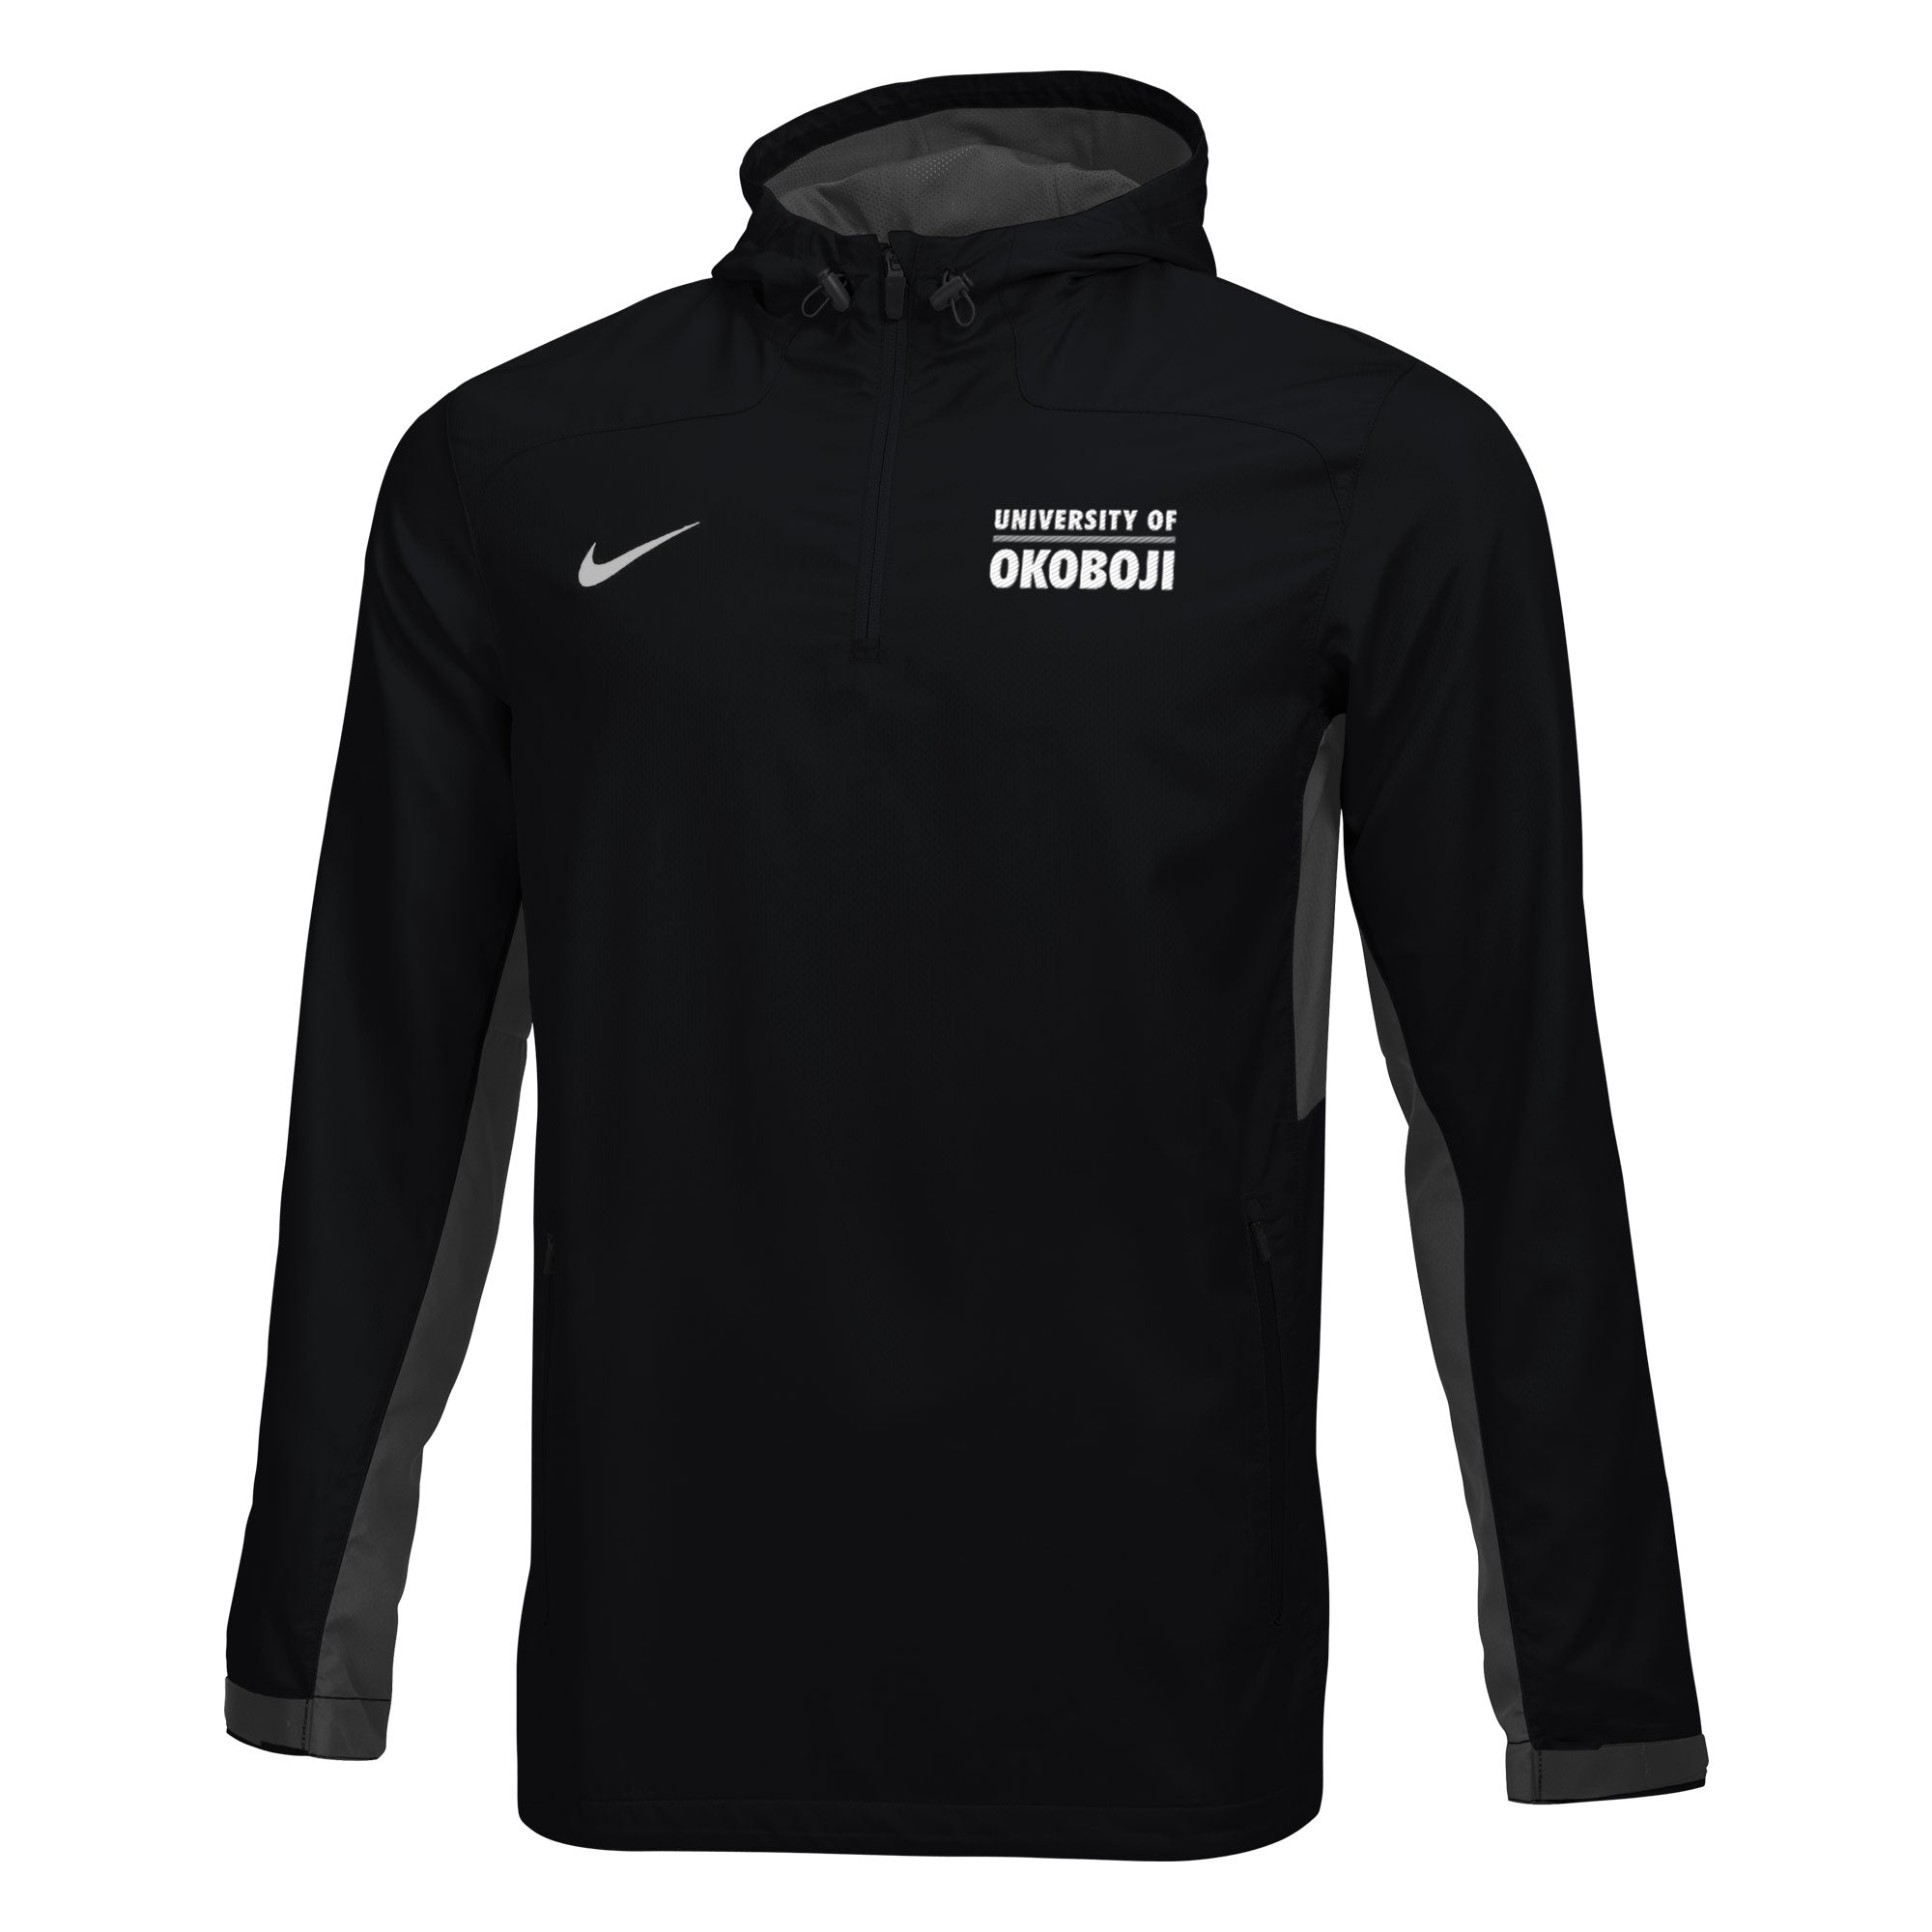 Men's Nike Woven 1/4 Zip Jacket - Black